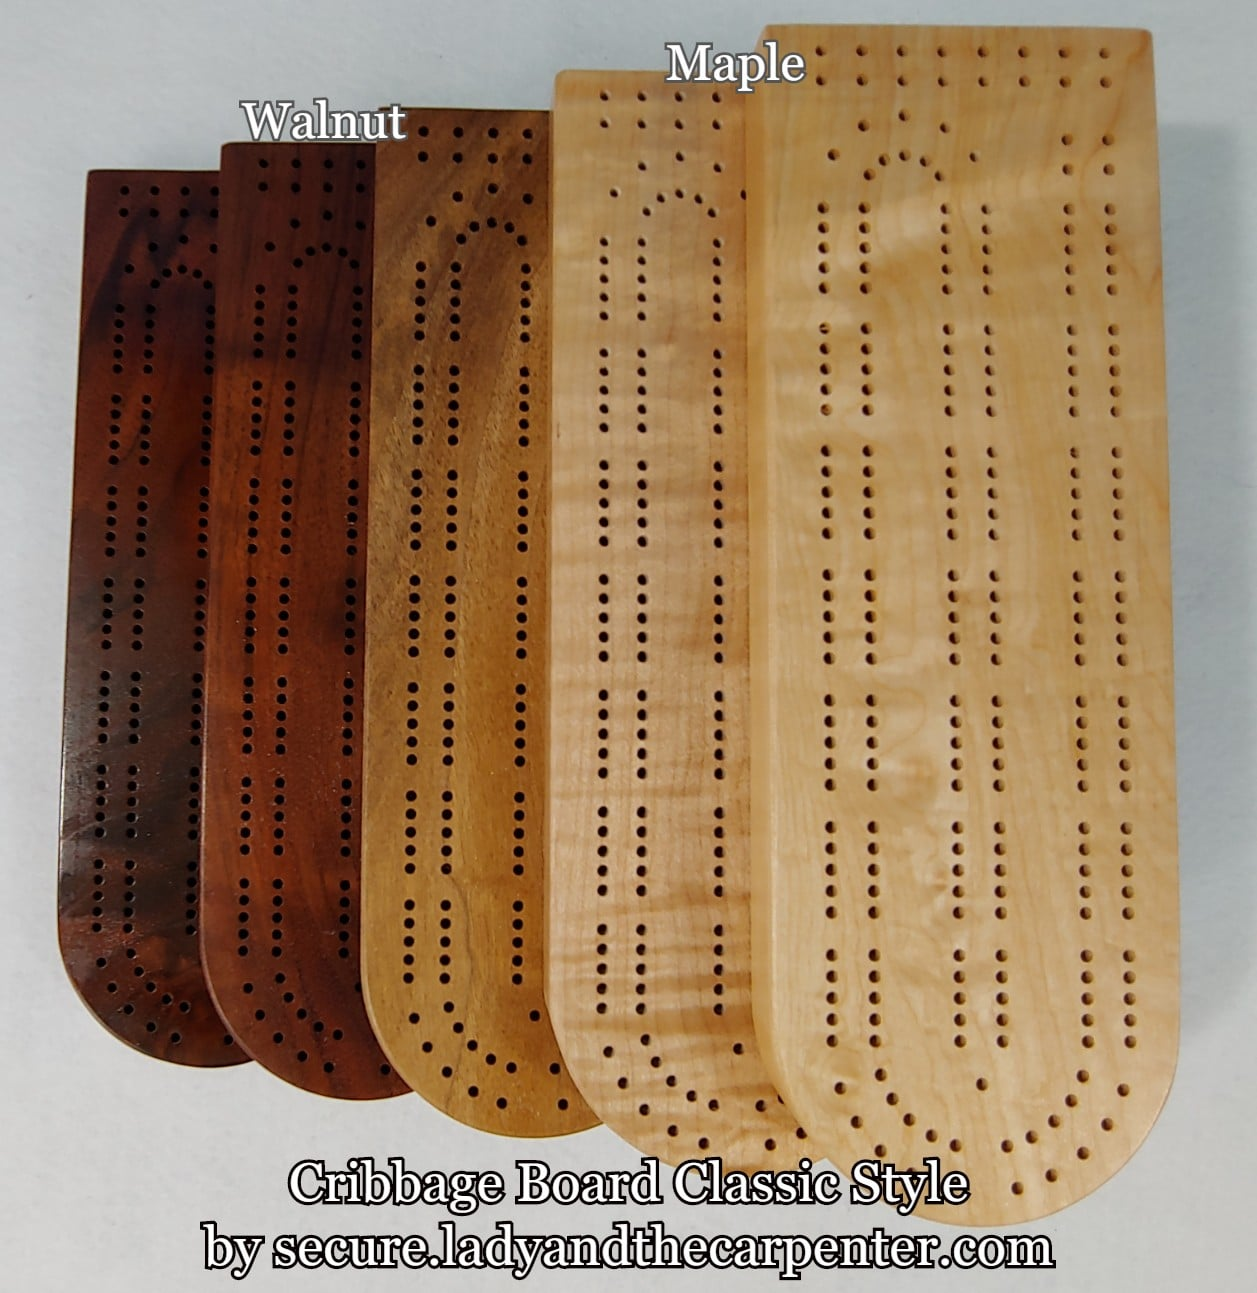 cribbage boards